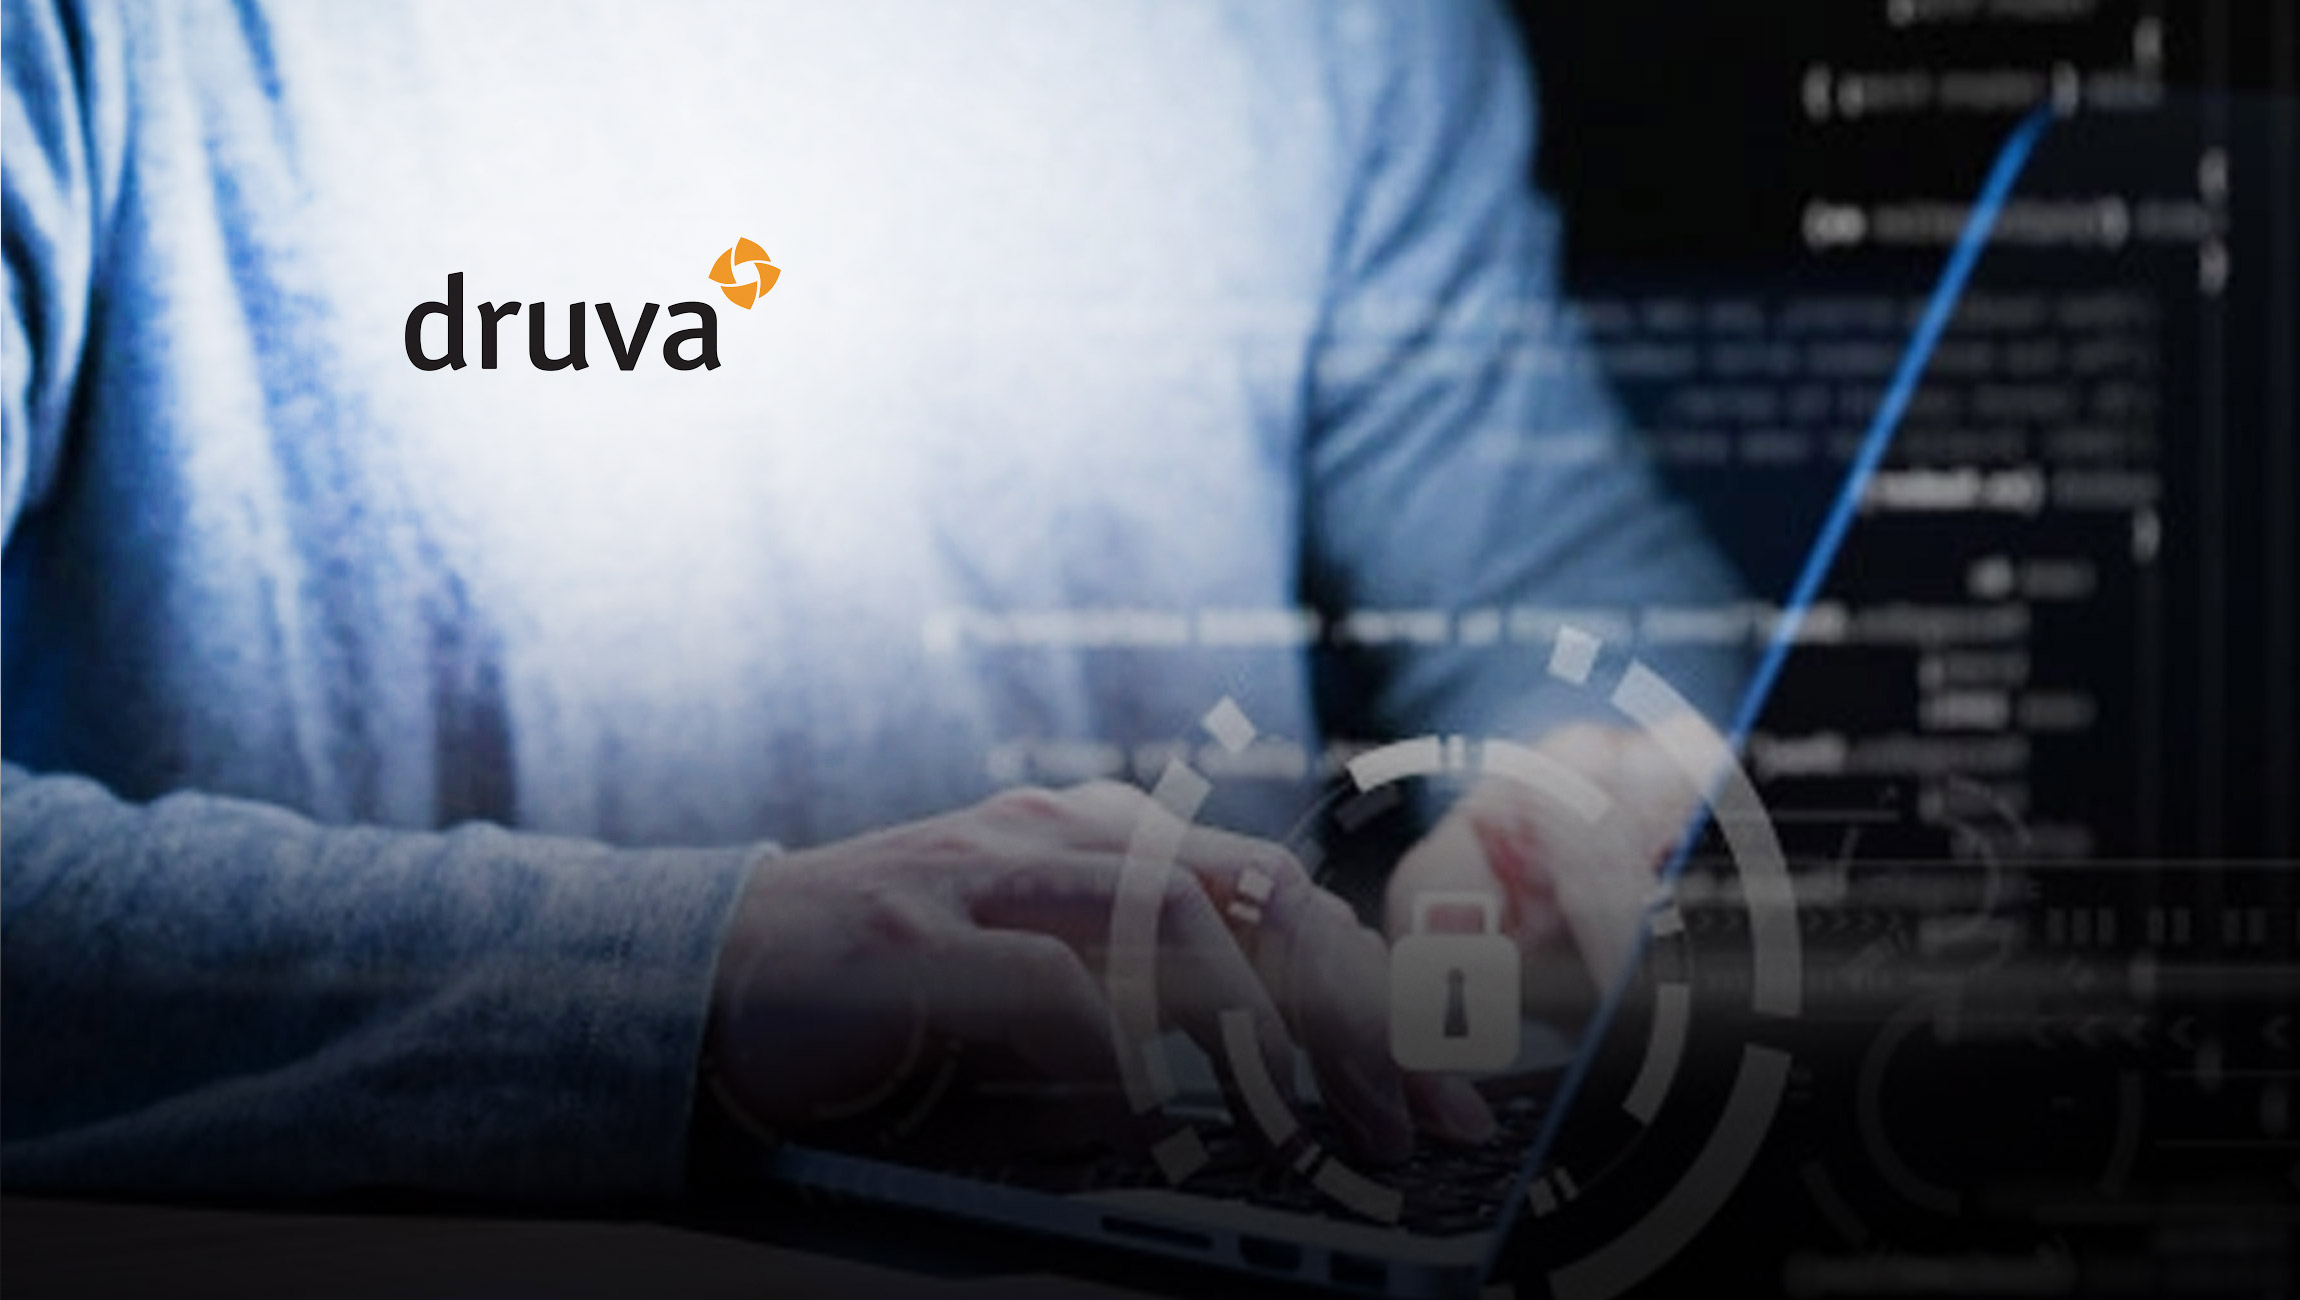 Druva-Receives-Cyber-Catalyst-Designation-for-Outstanding-Product-Security-and-Ability-to-Combat-Ransomware